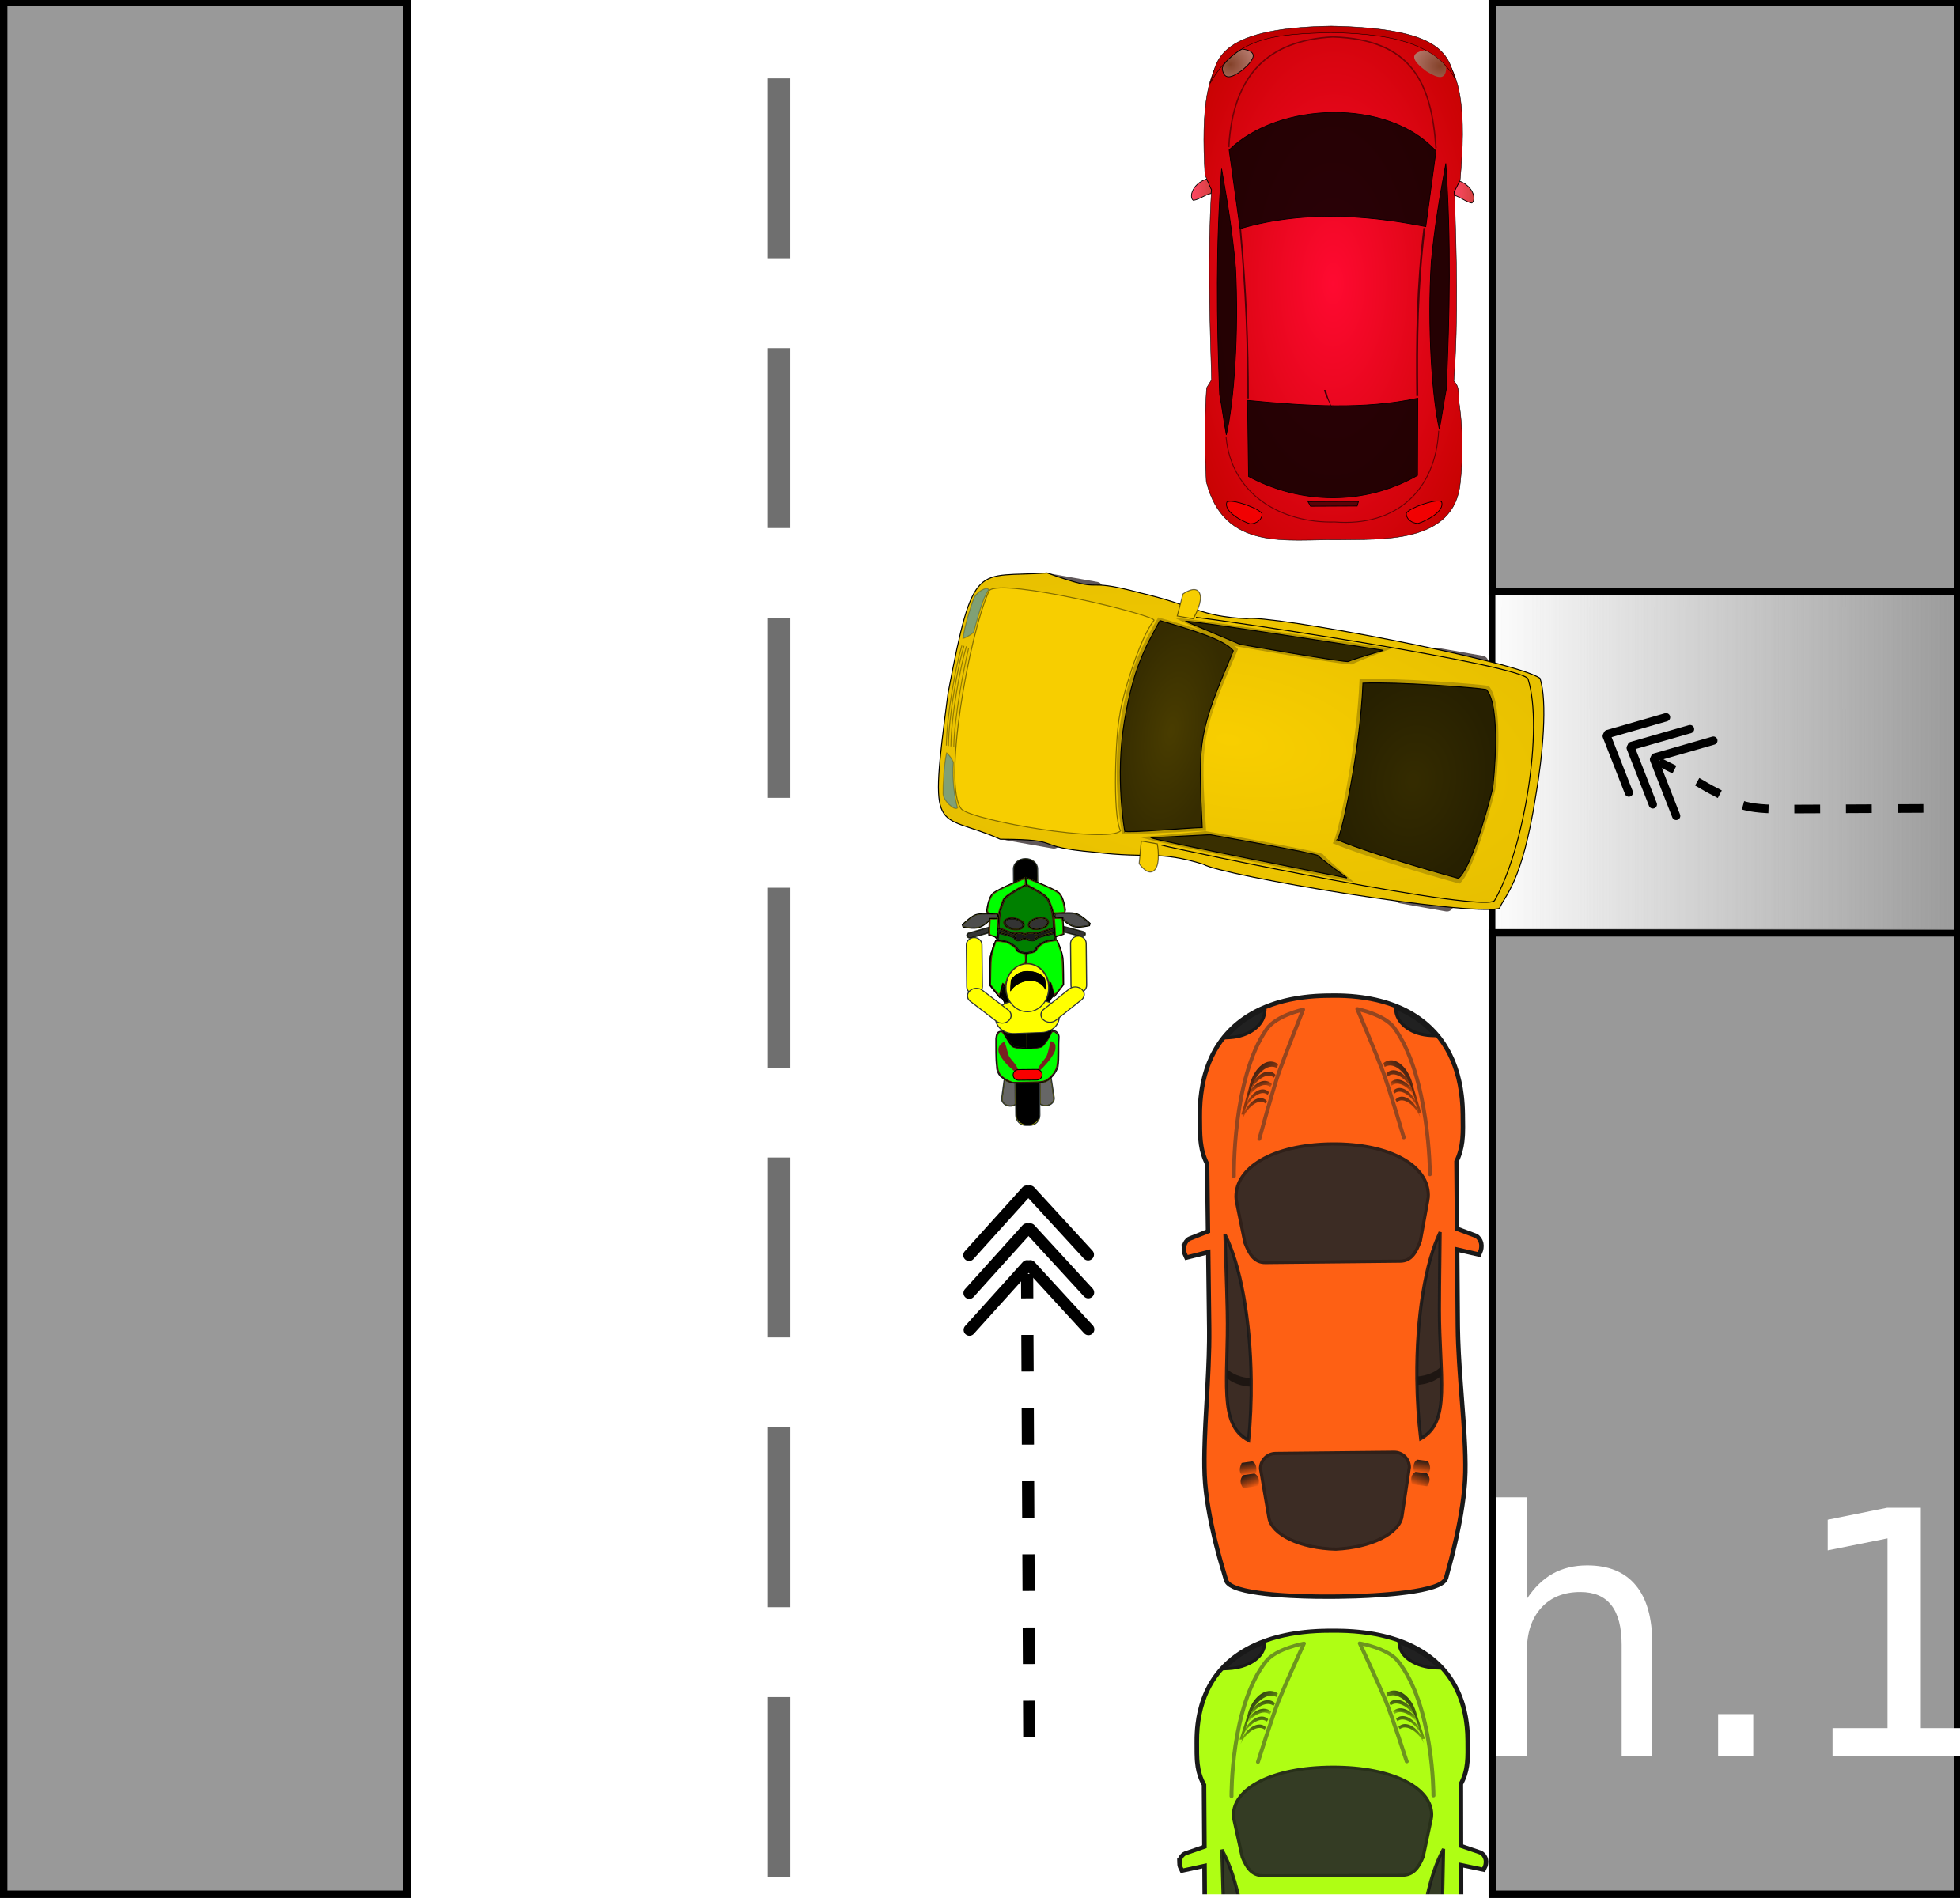 traffic accident pictograms h.1 by Gusta